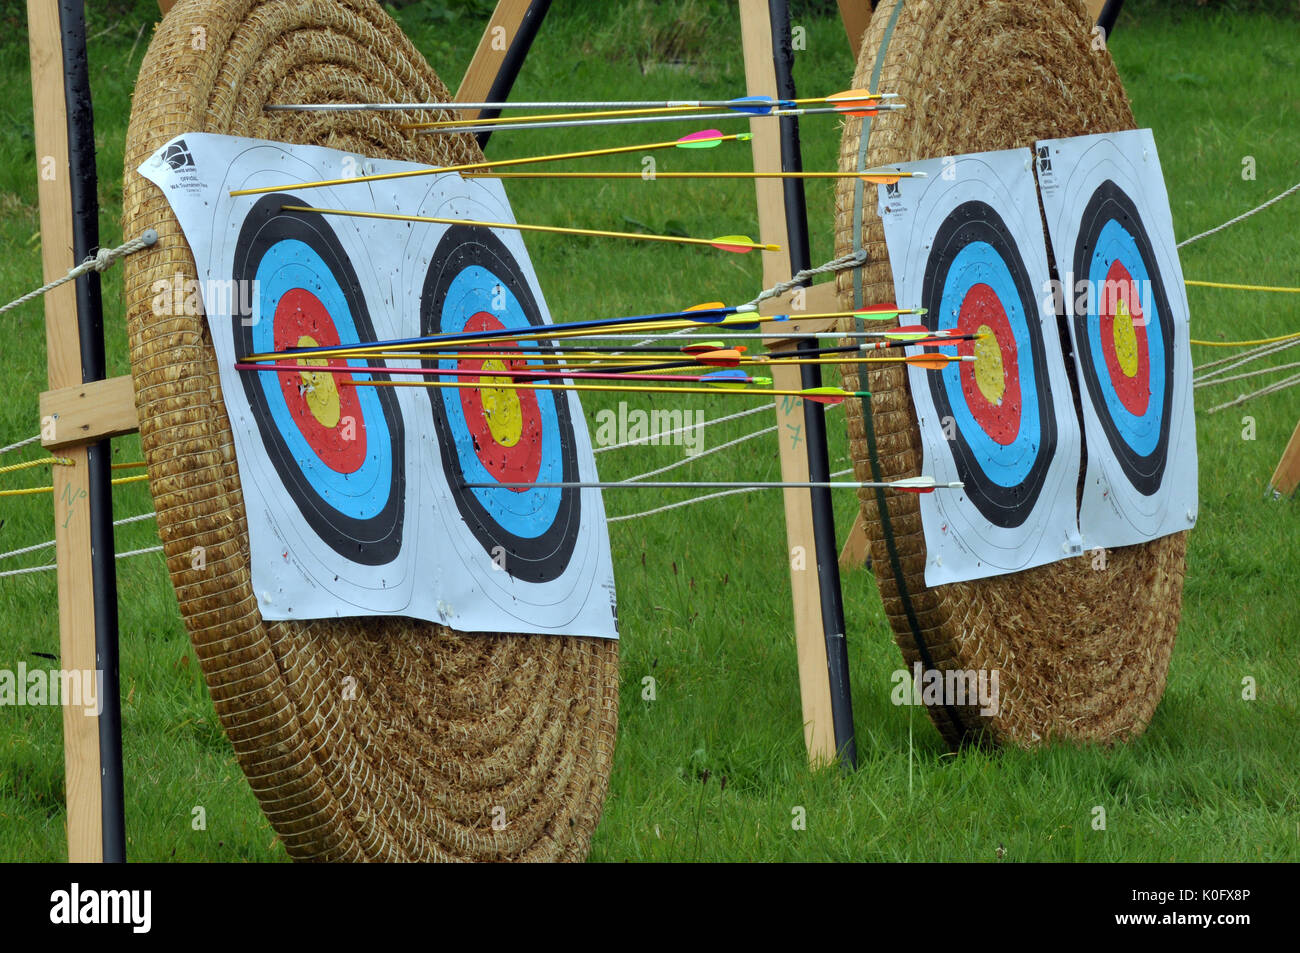 traditional archery targets for bow and arrow shooting competitions with arrows sticking into the bulls eye and inner and outer rings of the targets - Stock Image